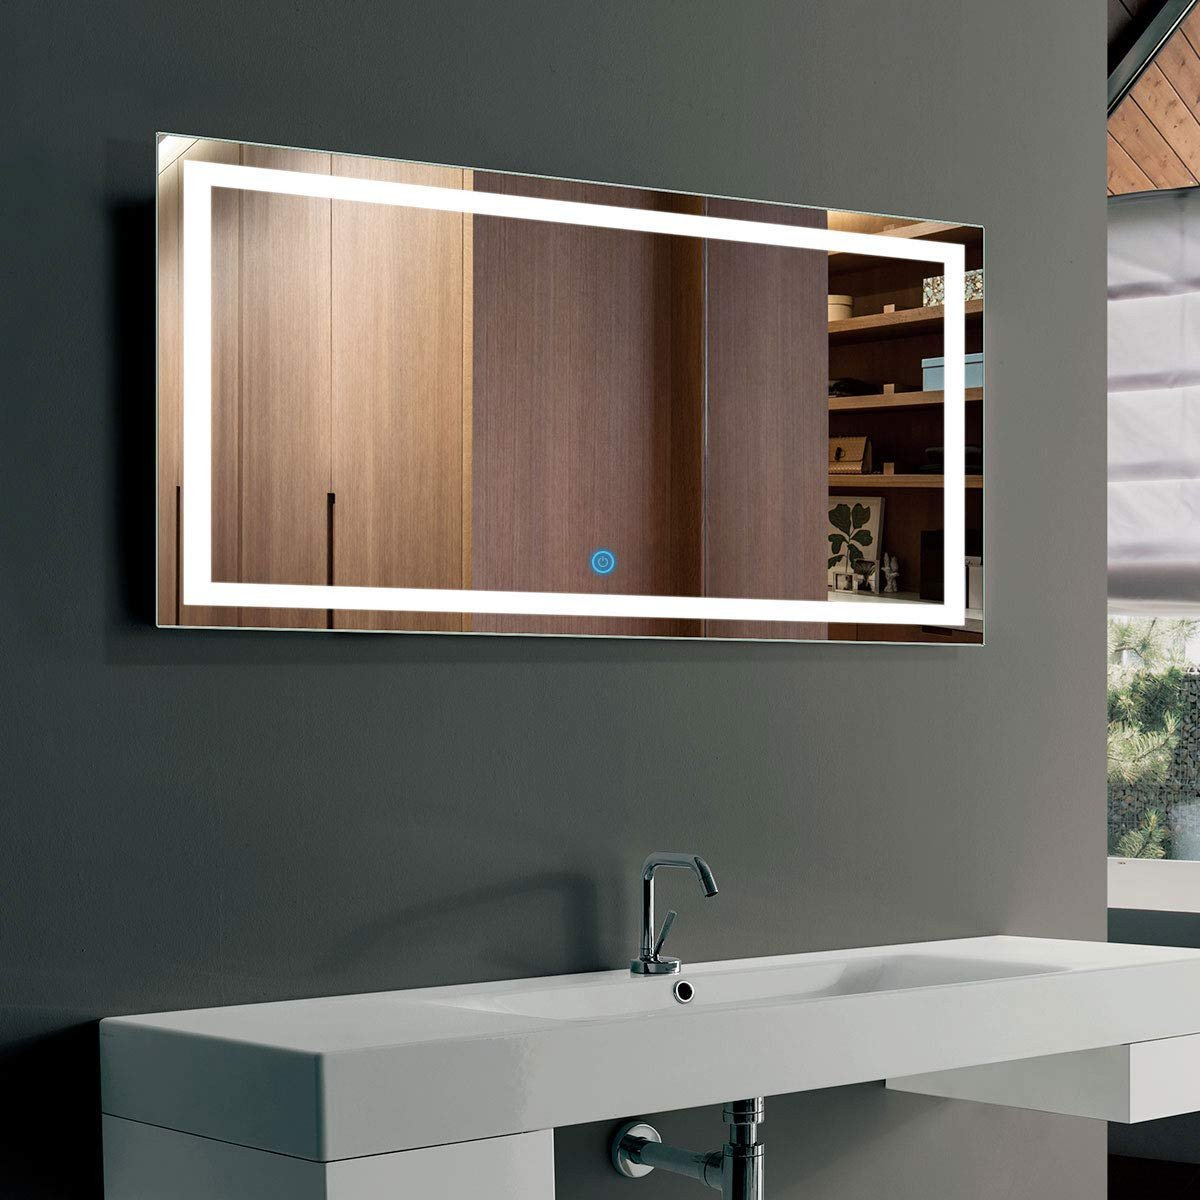 Vanity Mirror with Light for Bedroom Awesome 40 X 24 In Horizontal Led Bathroom Silvered Mirror with touch button Ck010 G